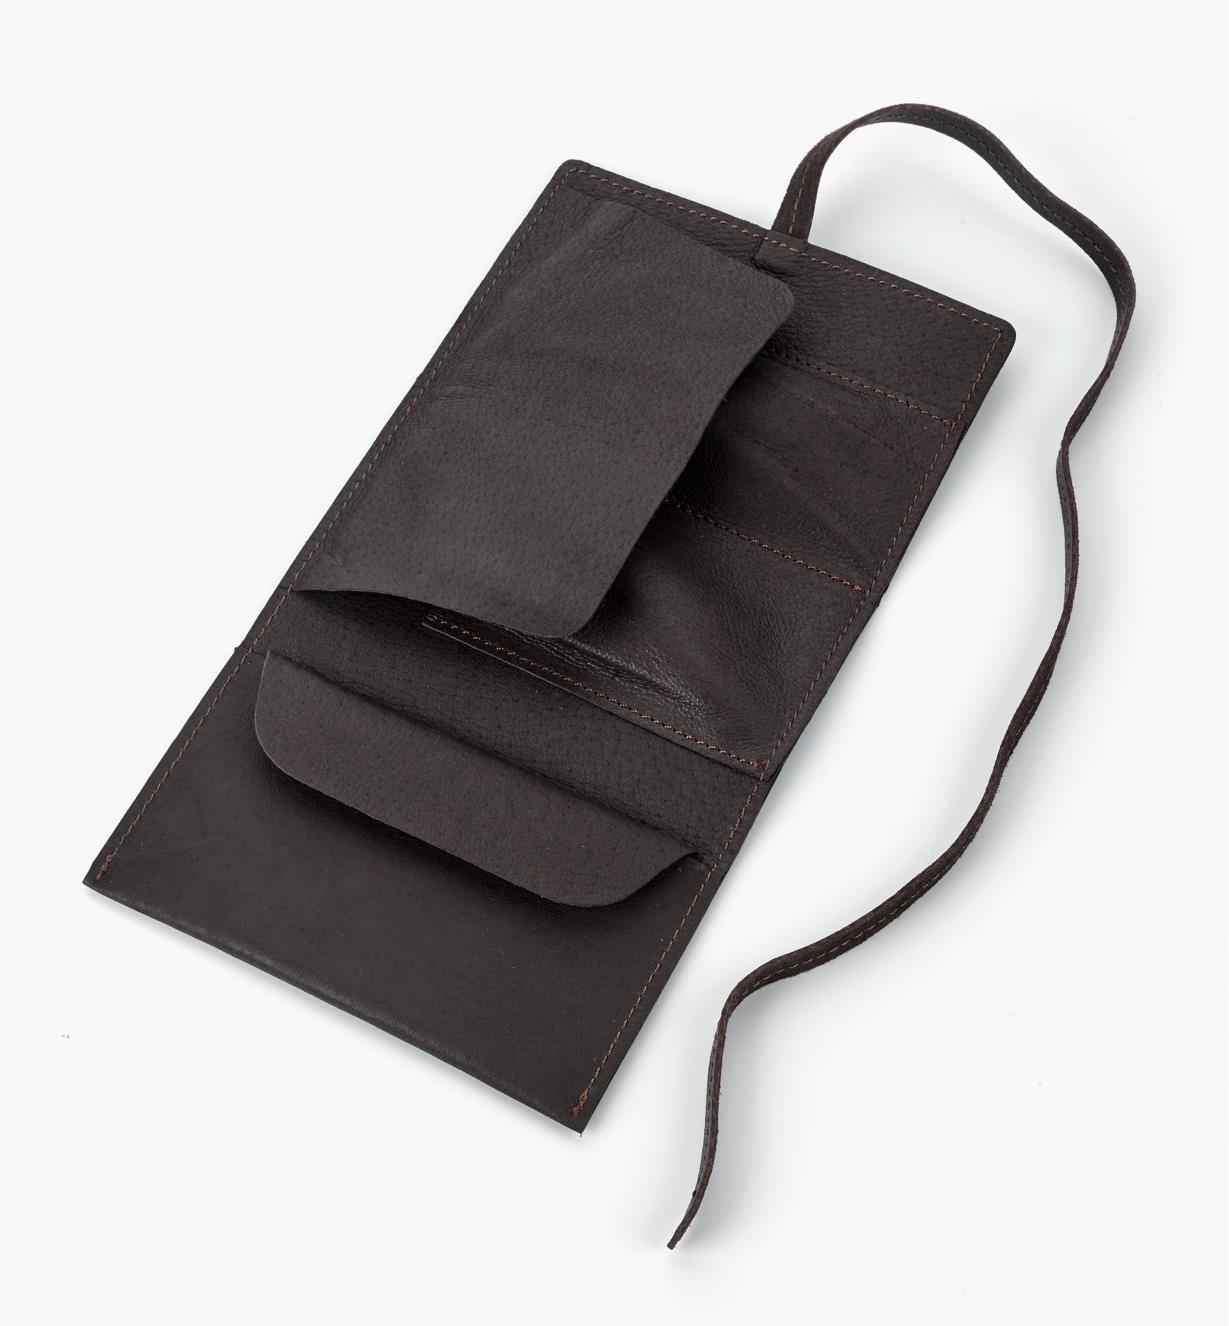 99W0720 - Leather Cord Wallet